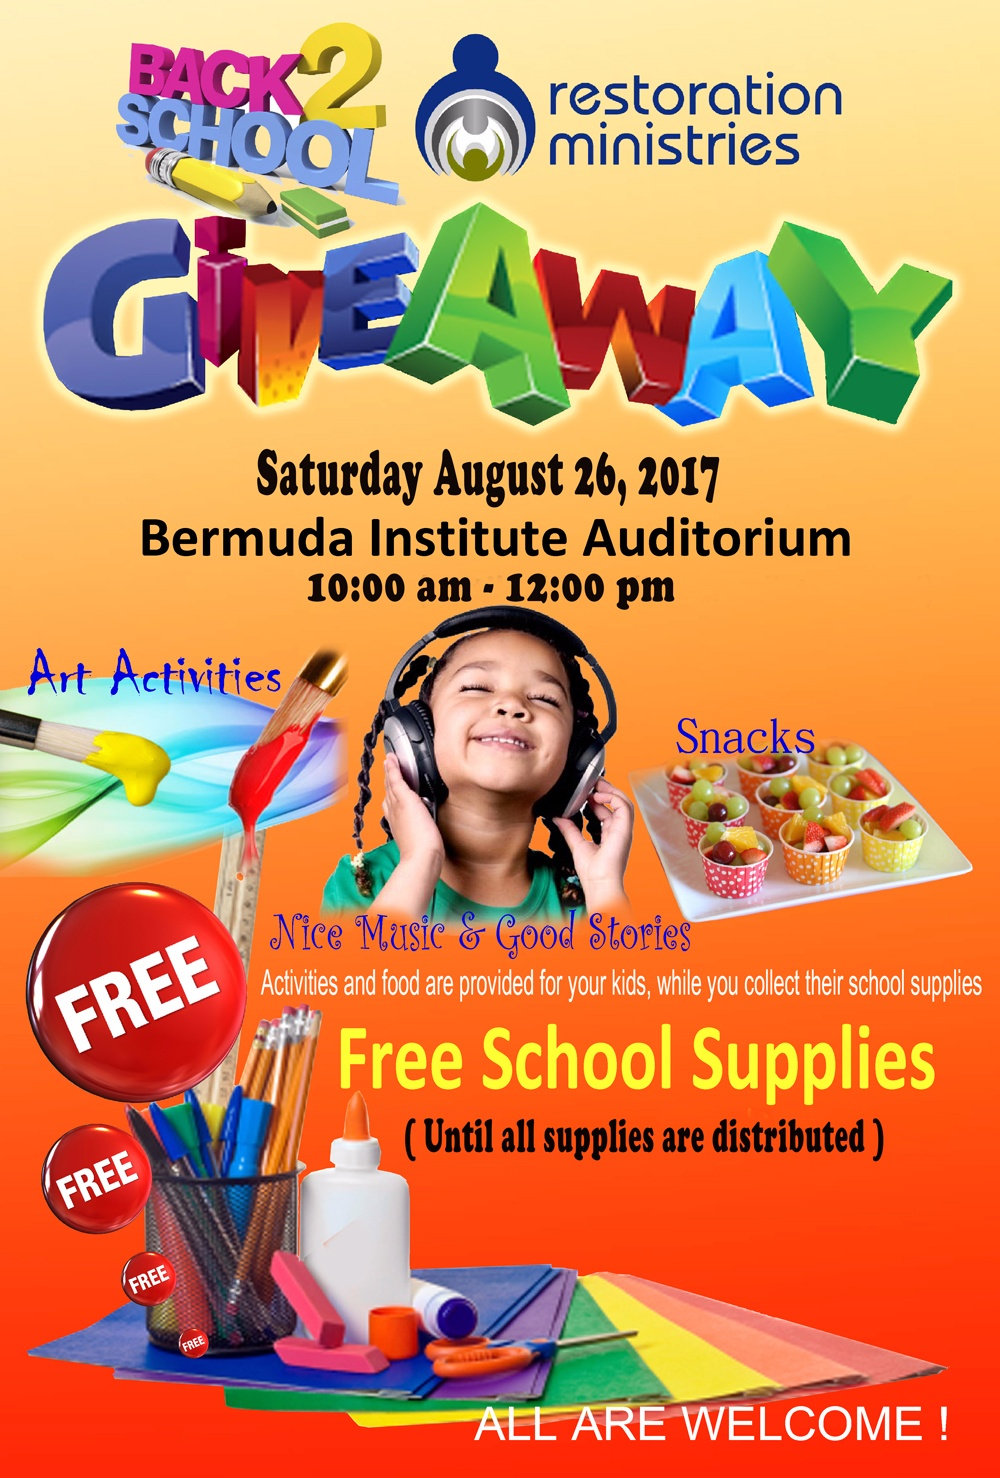 back 2 school giveaway Bermuda August 21 2017